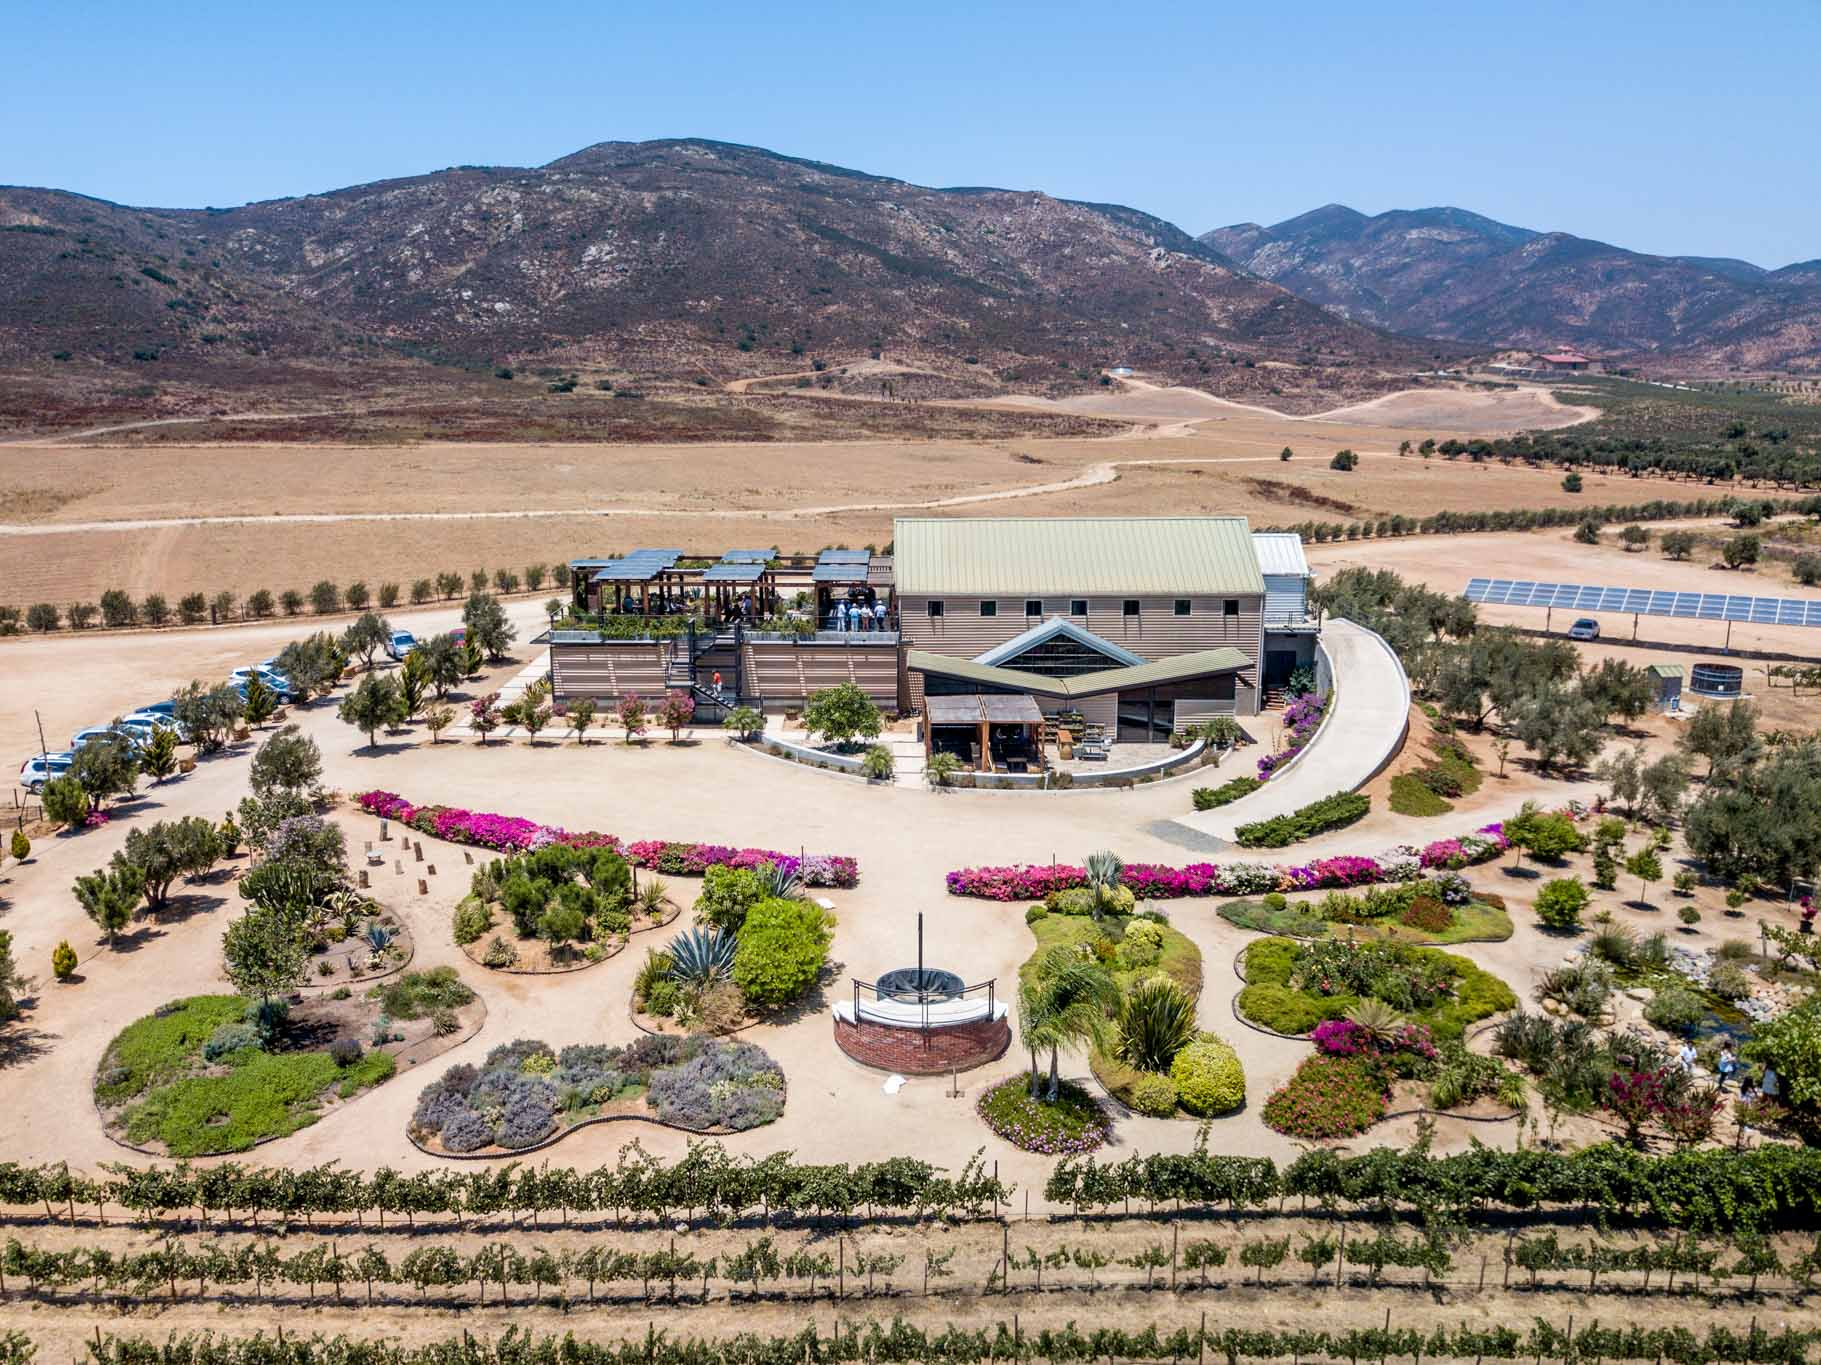 The Finca la Carrodilla Winery in the Valle de Guadalupe Baja.  This was the highlight of the Baja California wine country for us.